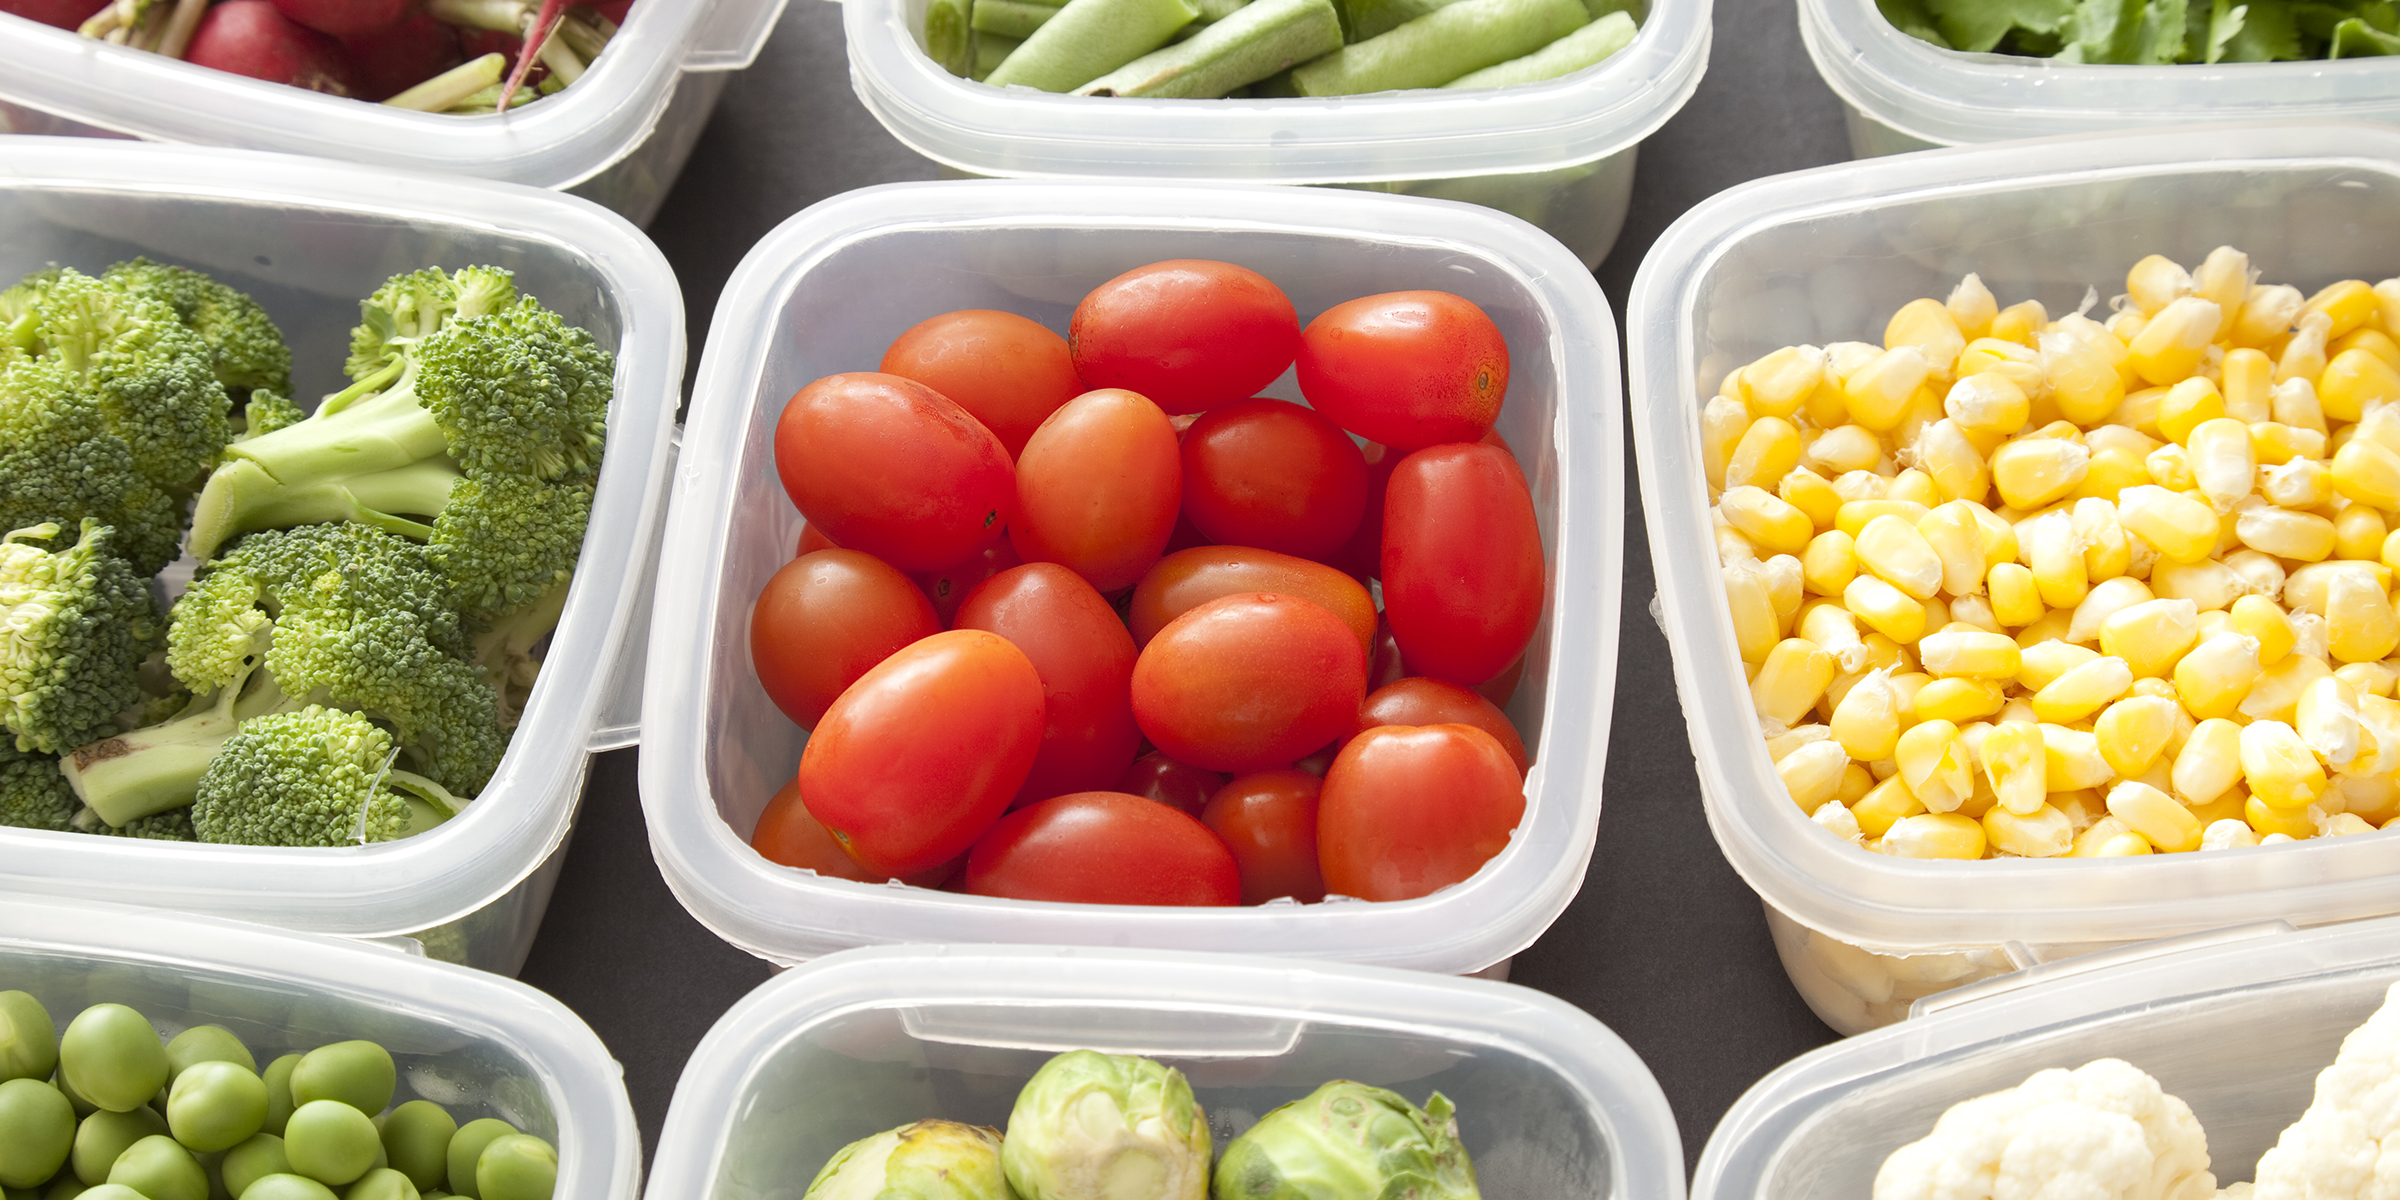 Food Storage Containers We Love Rubbermaid Pyrex Oxo And More Bring Your Own Lunch Set Tupperware